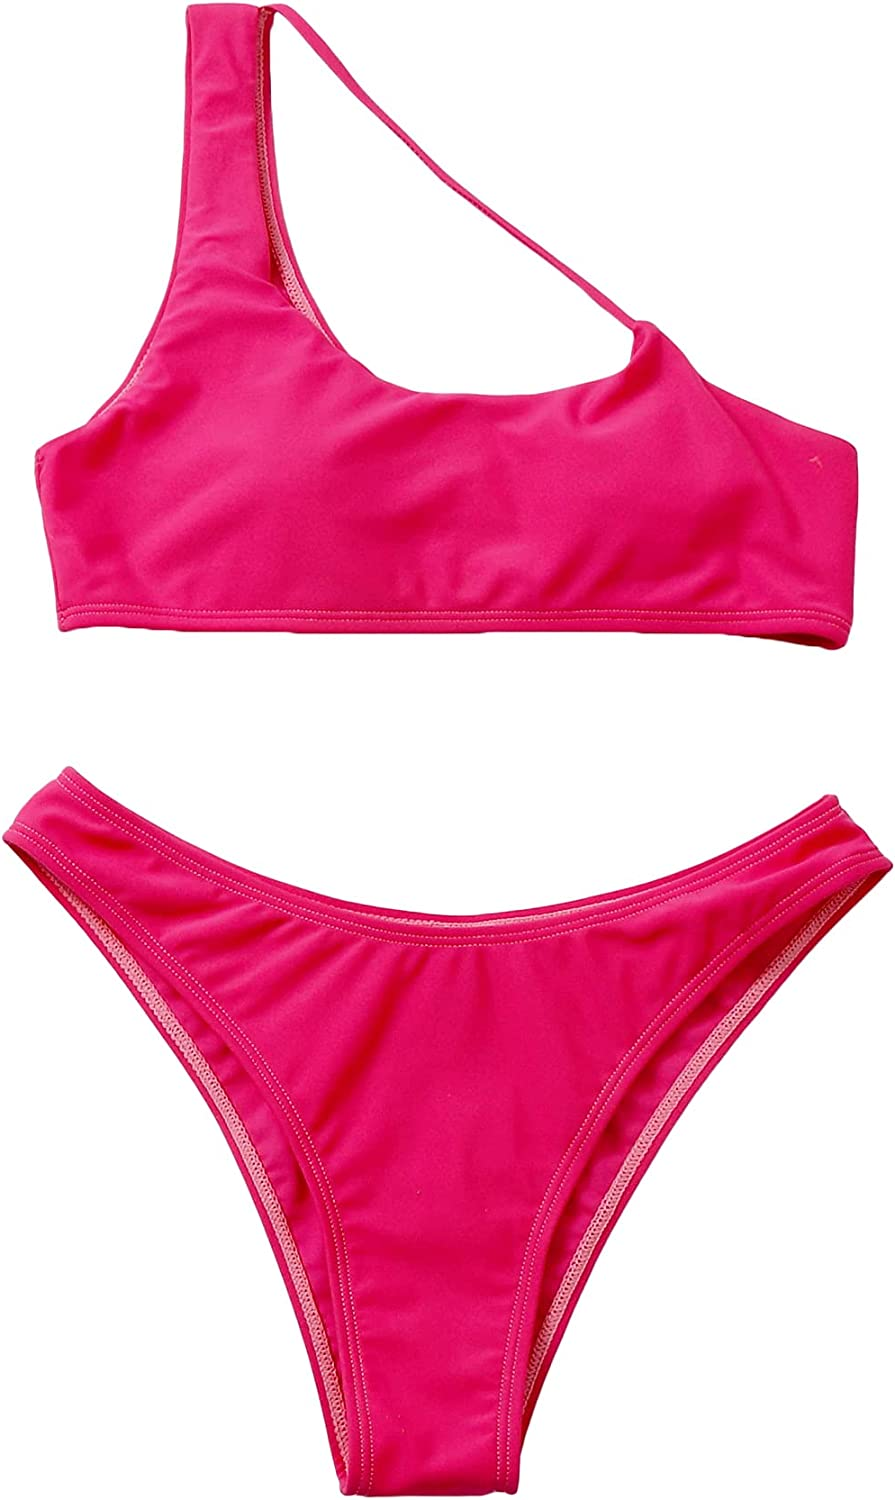 SOLY HUX Women's Cut Out One Shoulder Bikini Two Piece Swimsuits Bathing Suits